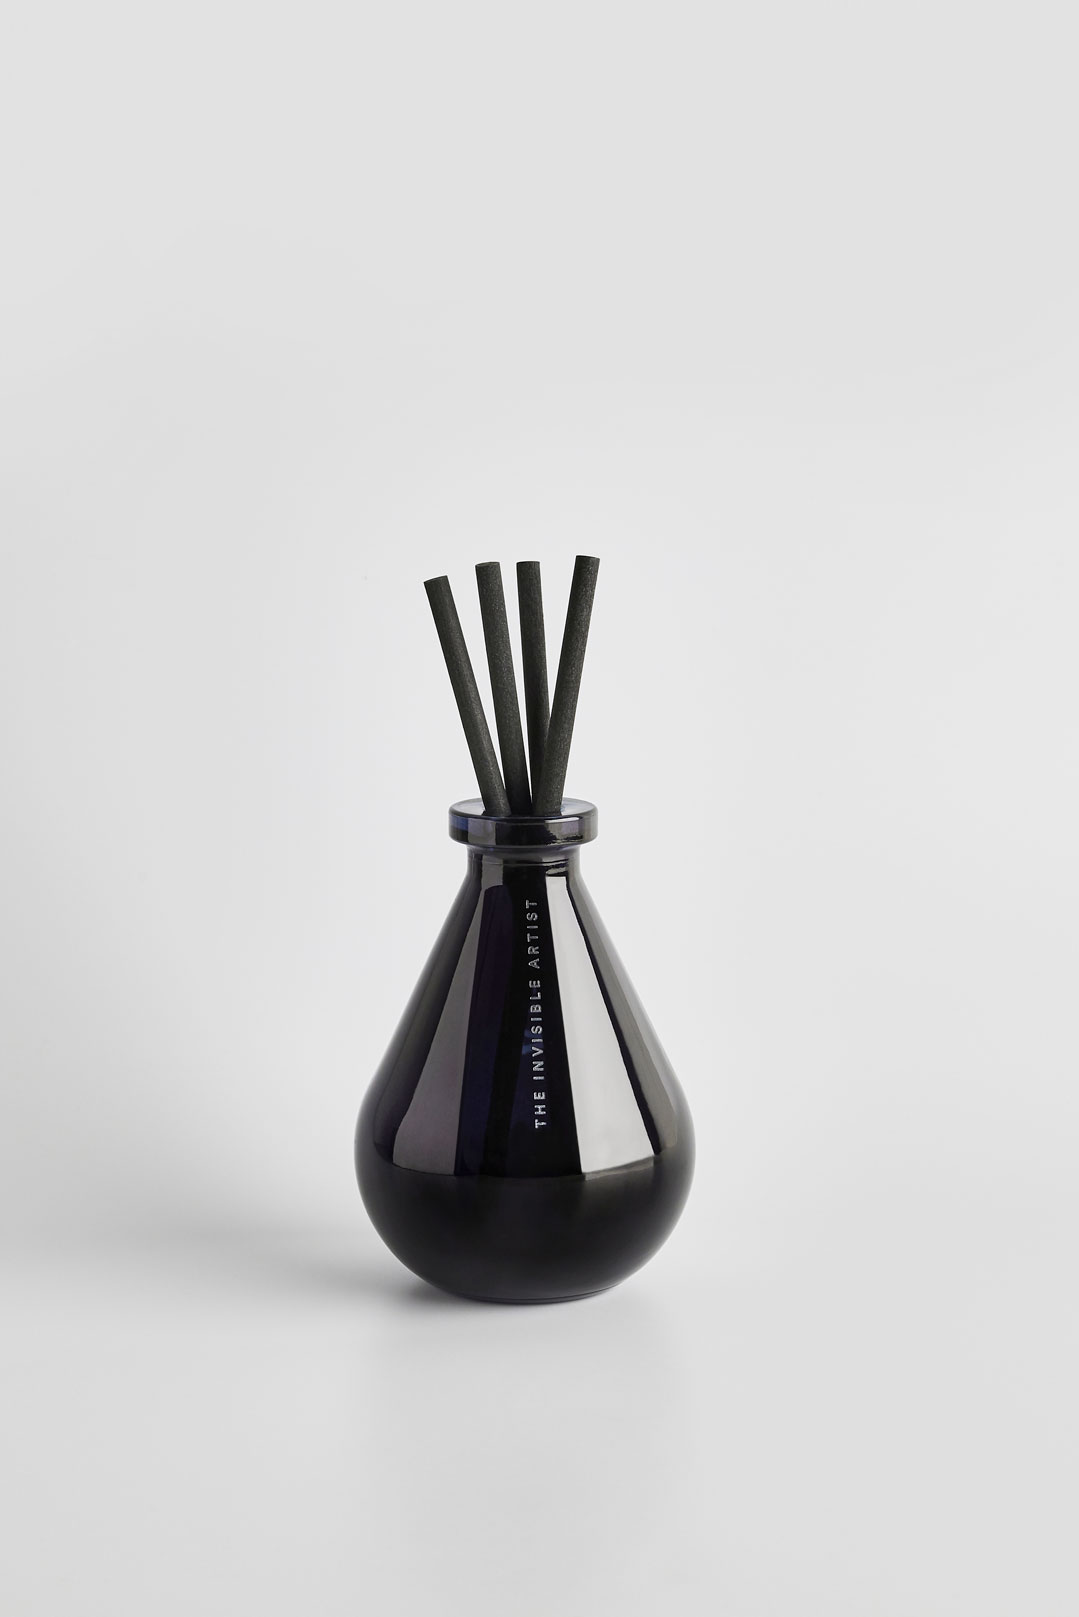 Leur D' Encins | Reed Diffuser by Auli London on curated-crowd.com